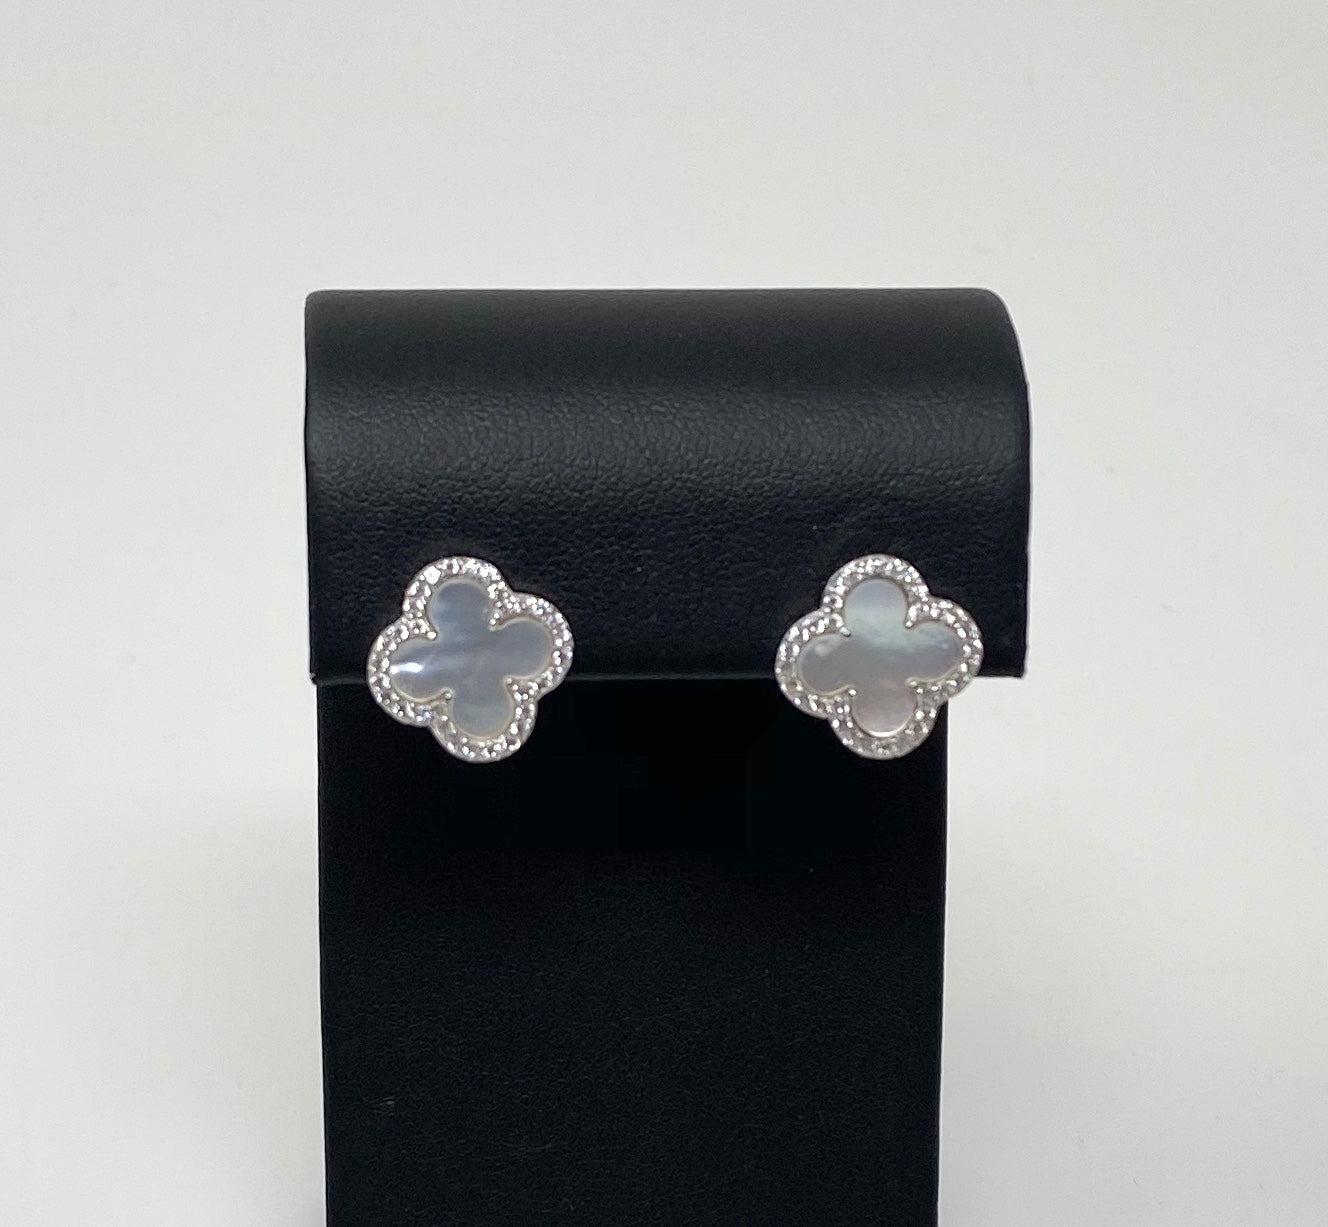 Style by Sophie Clover Earrings in White Gold Finish